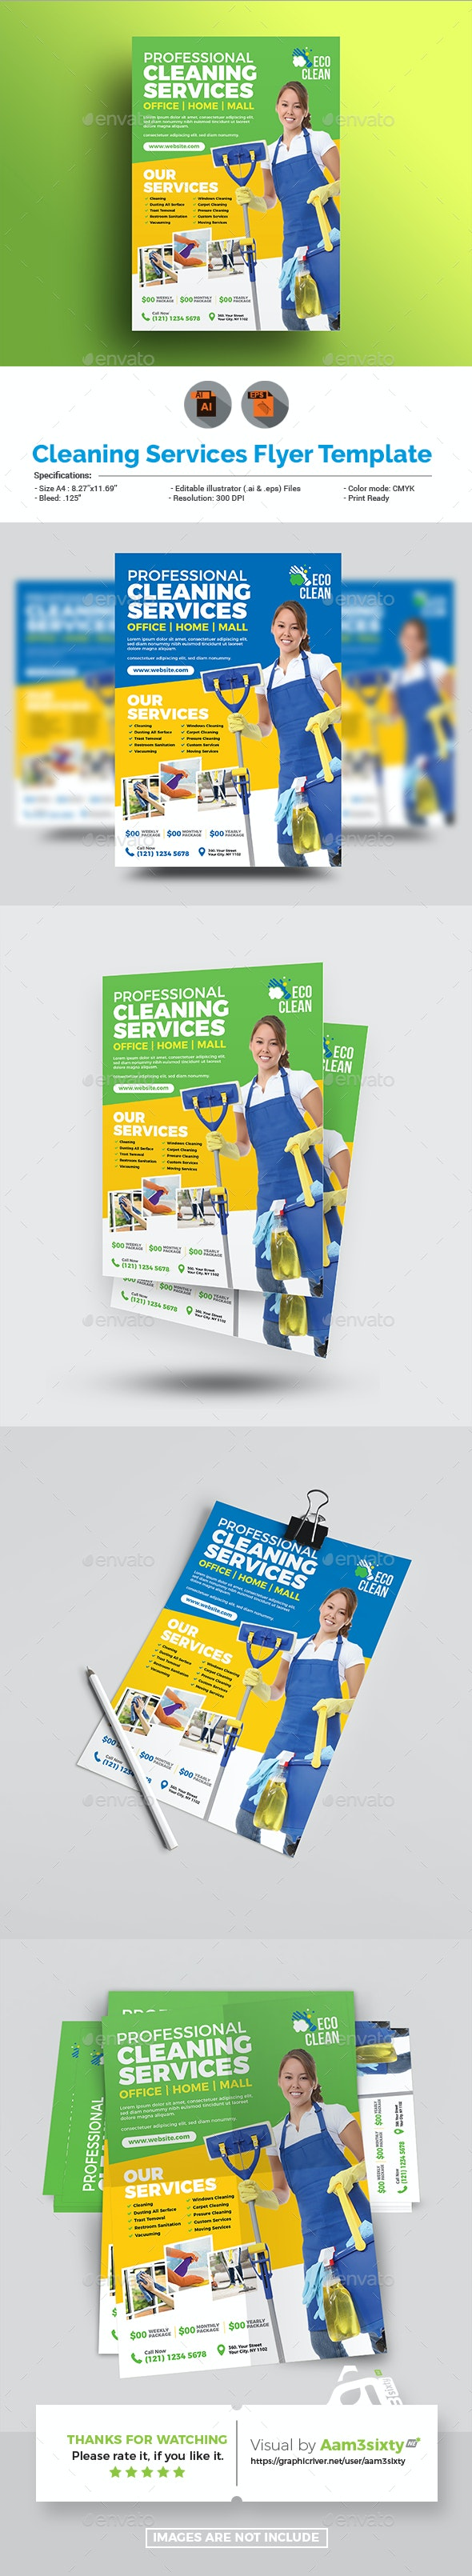 Cleaning Services Flyer Template - Corporate Flyers